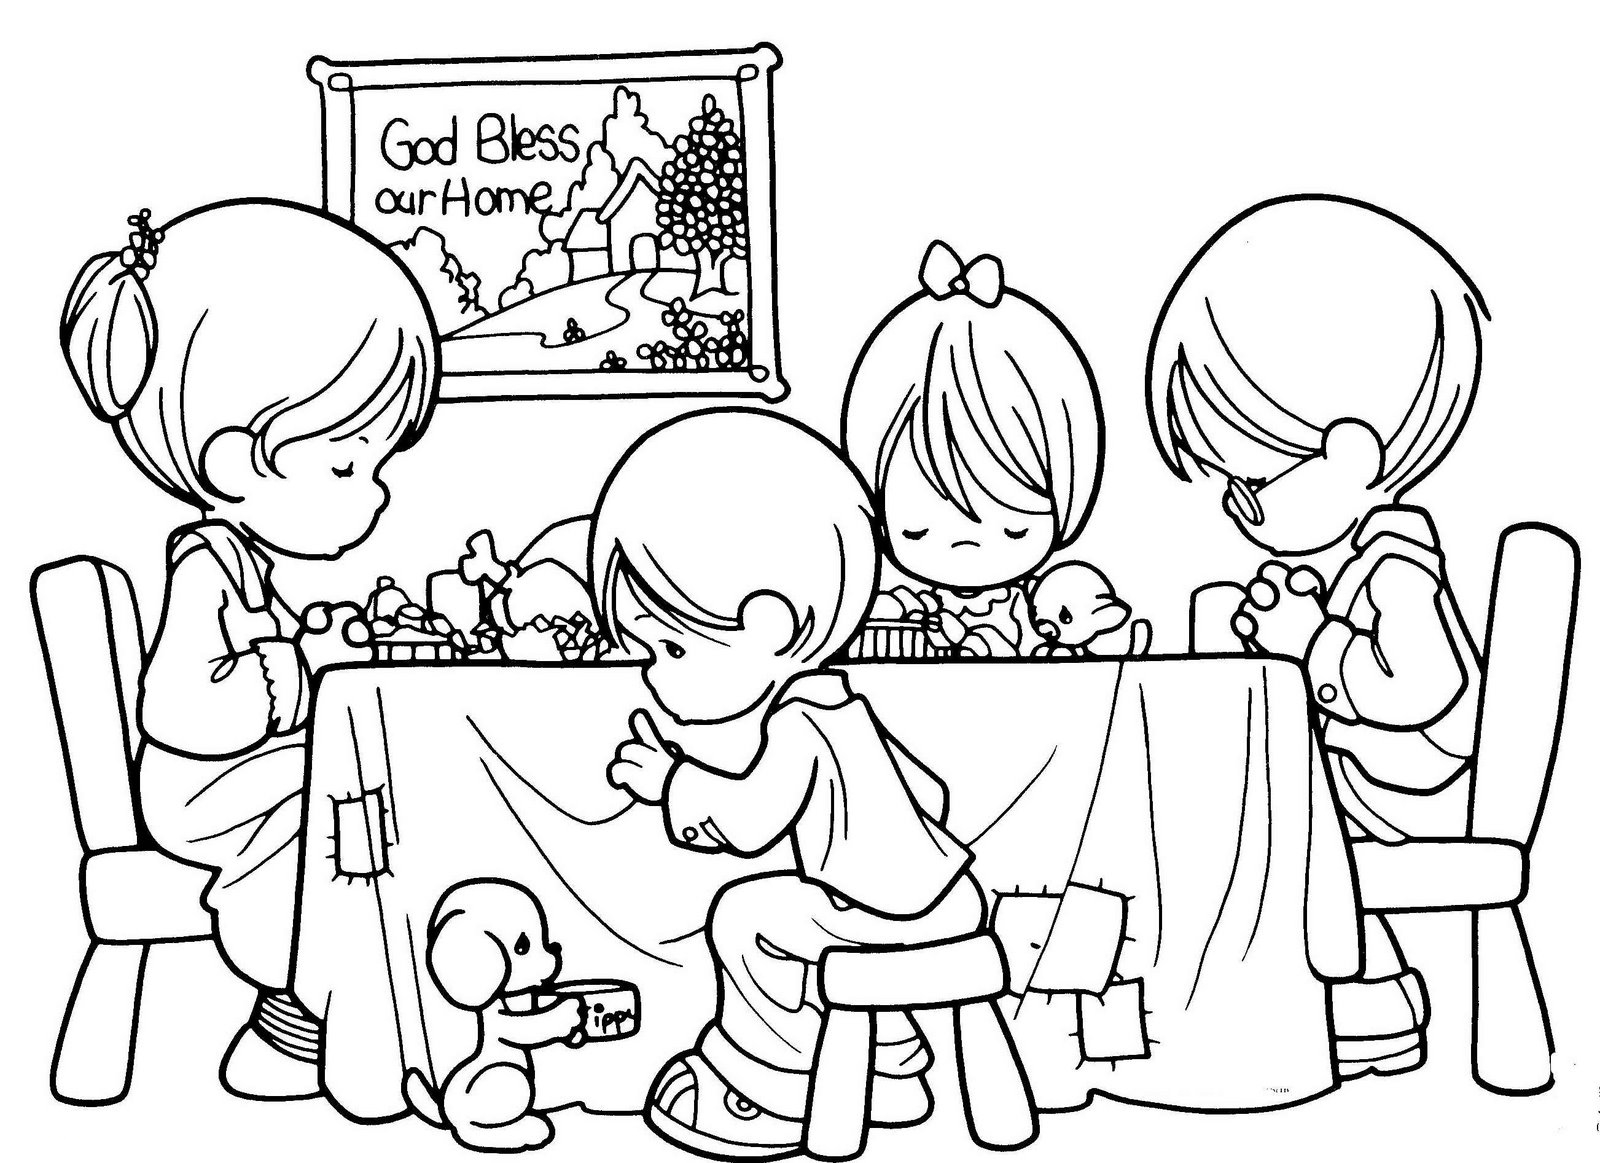 christian family coloring pages - photo#5